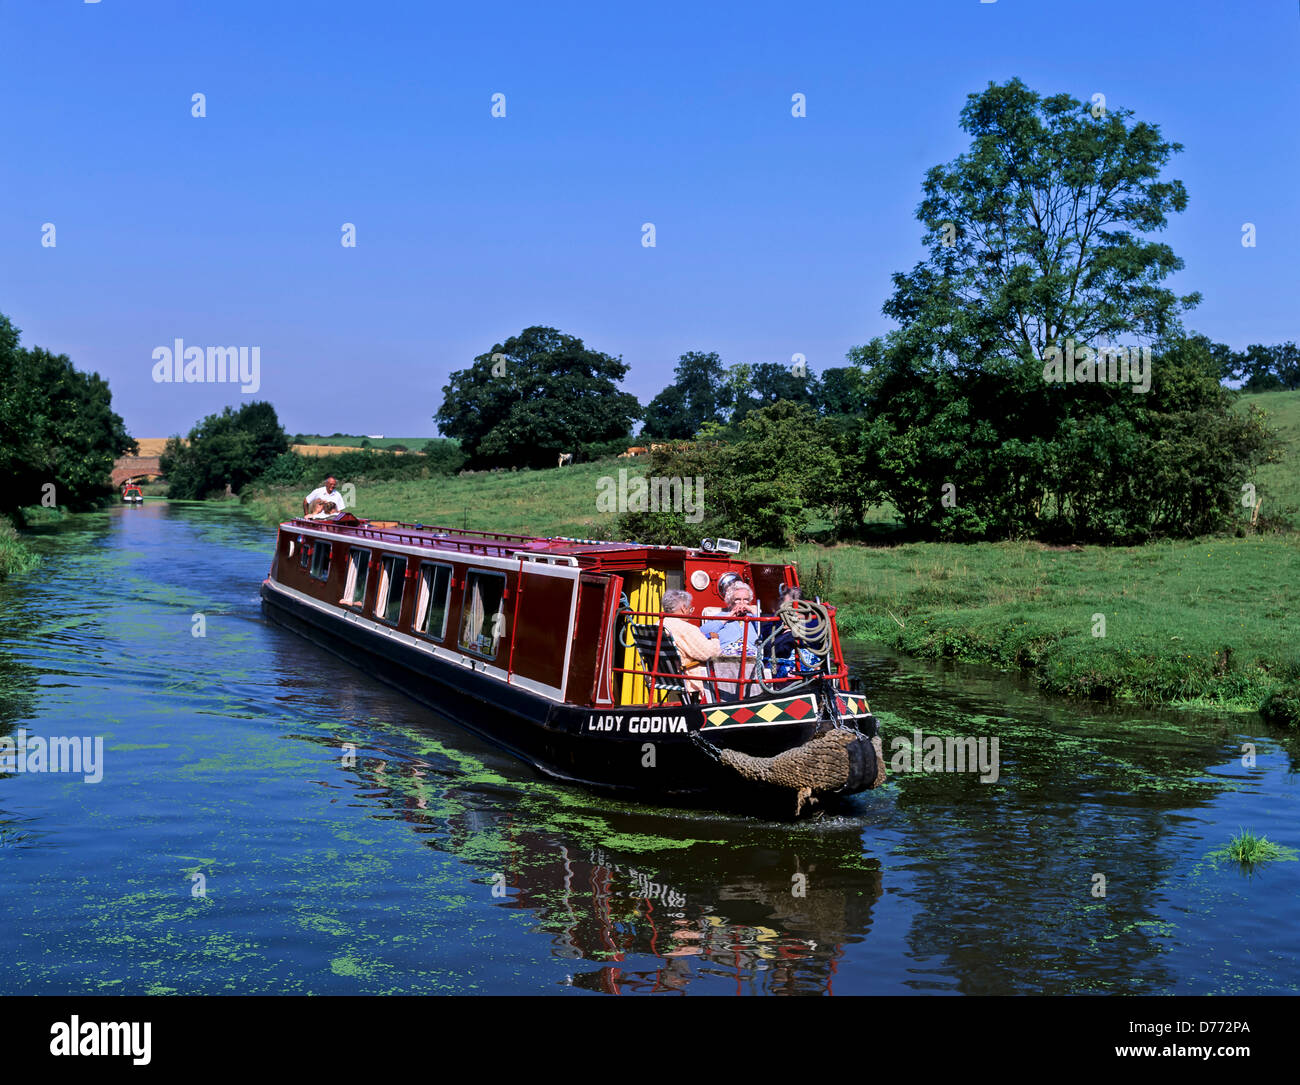 8684. Narrow boat on the Oxford canal, Warwickshire, England, UK, Europe - Stock Image